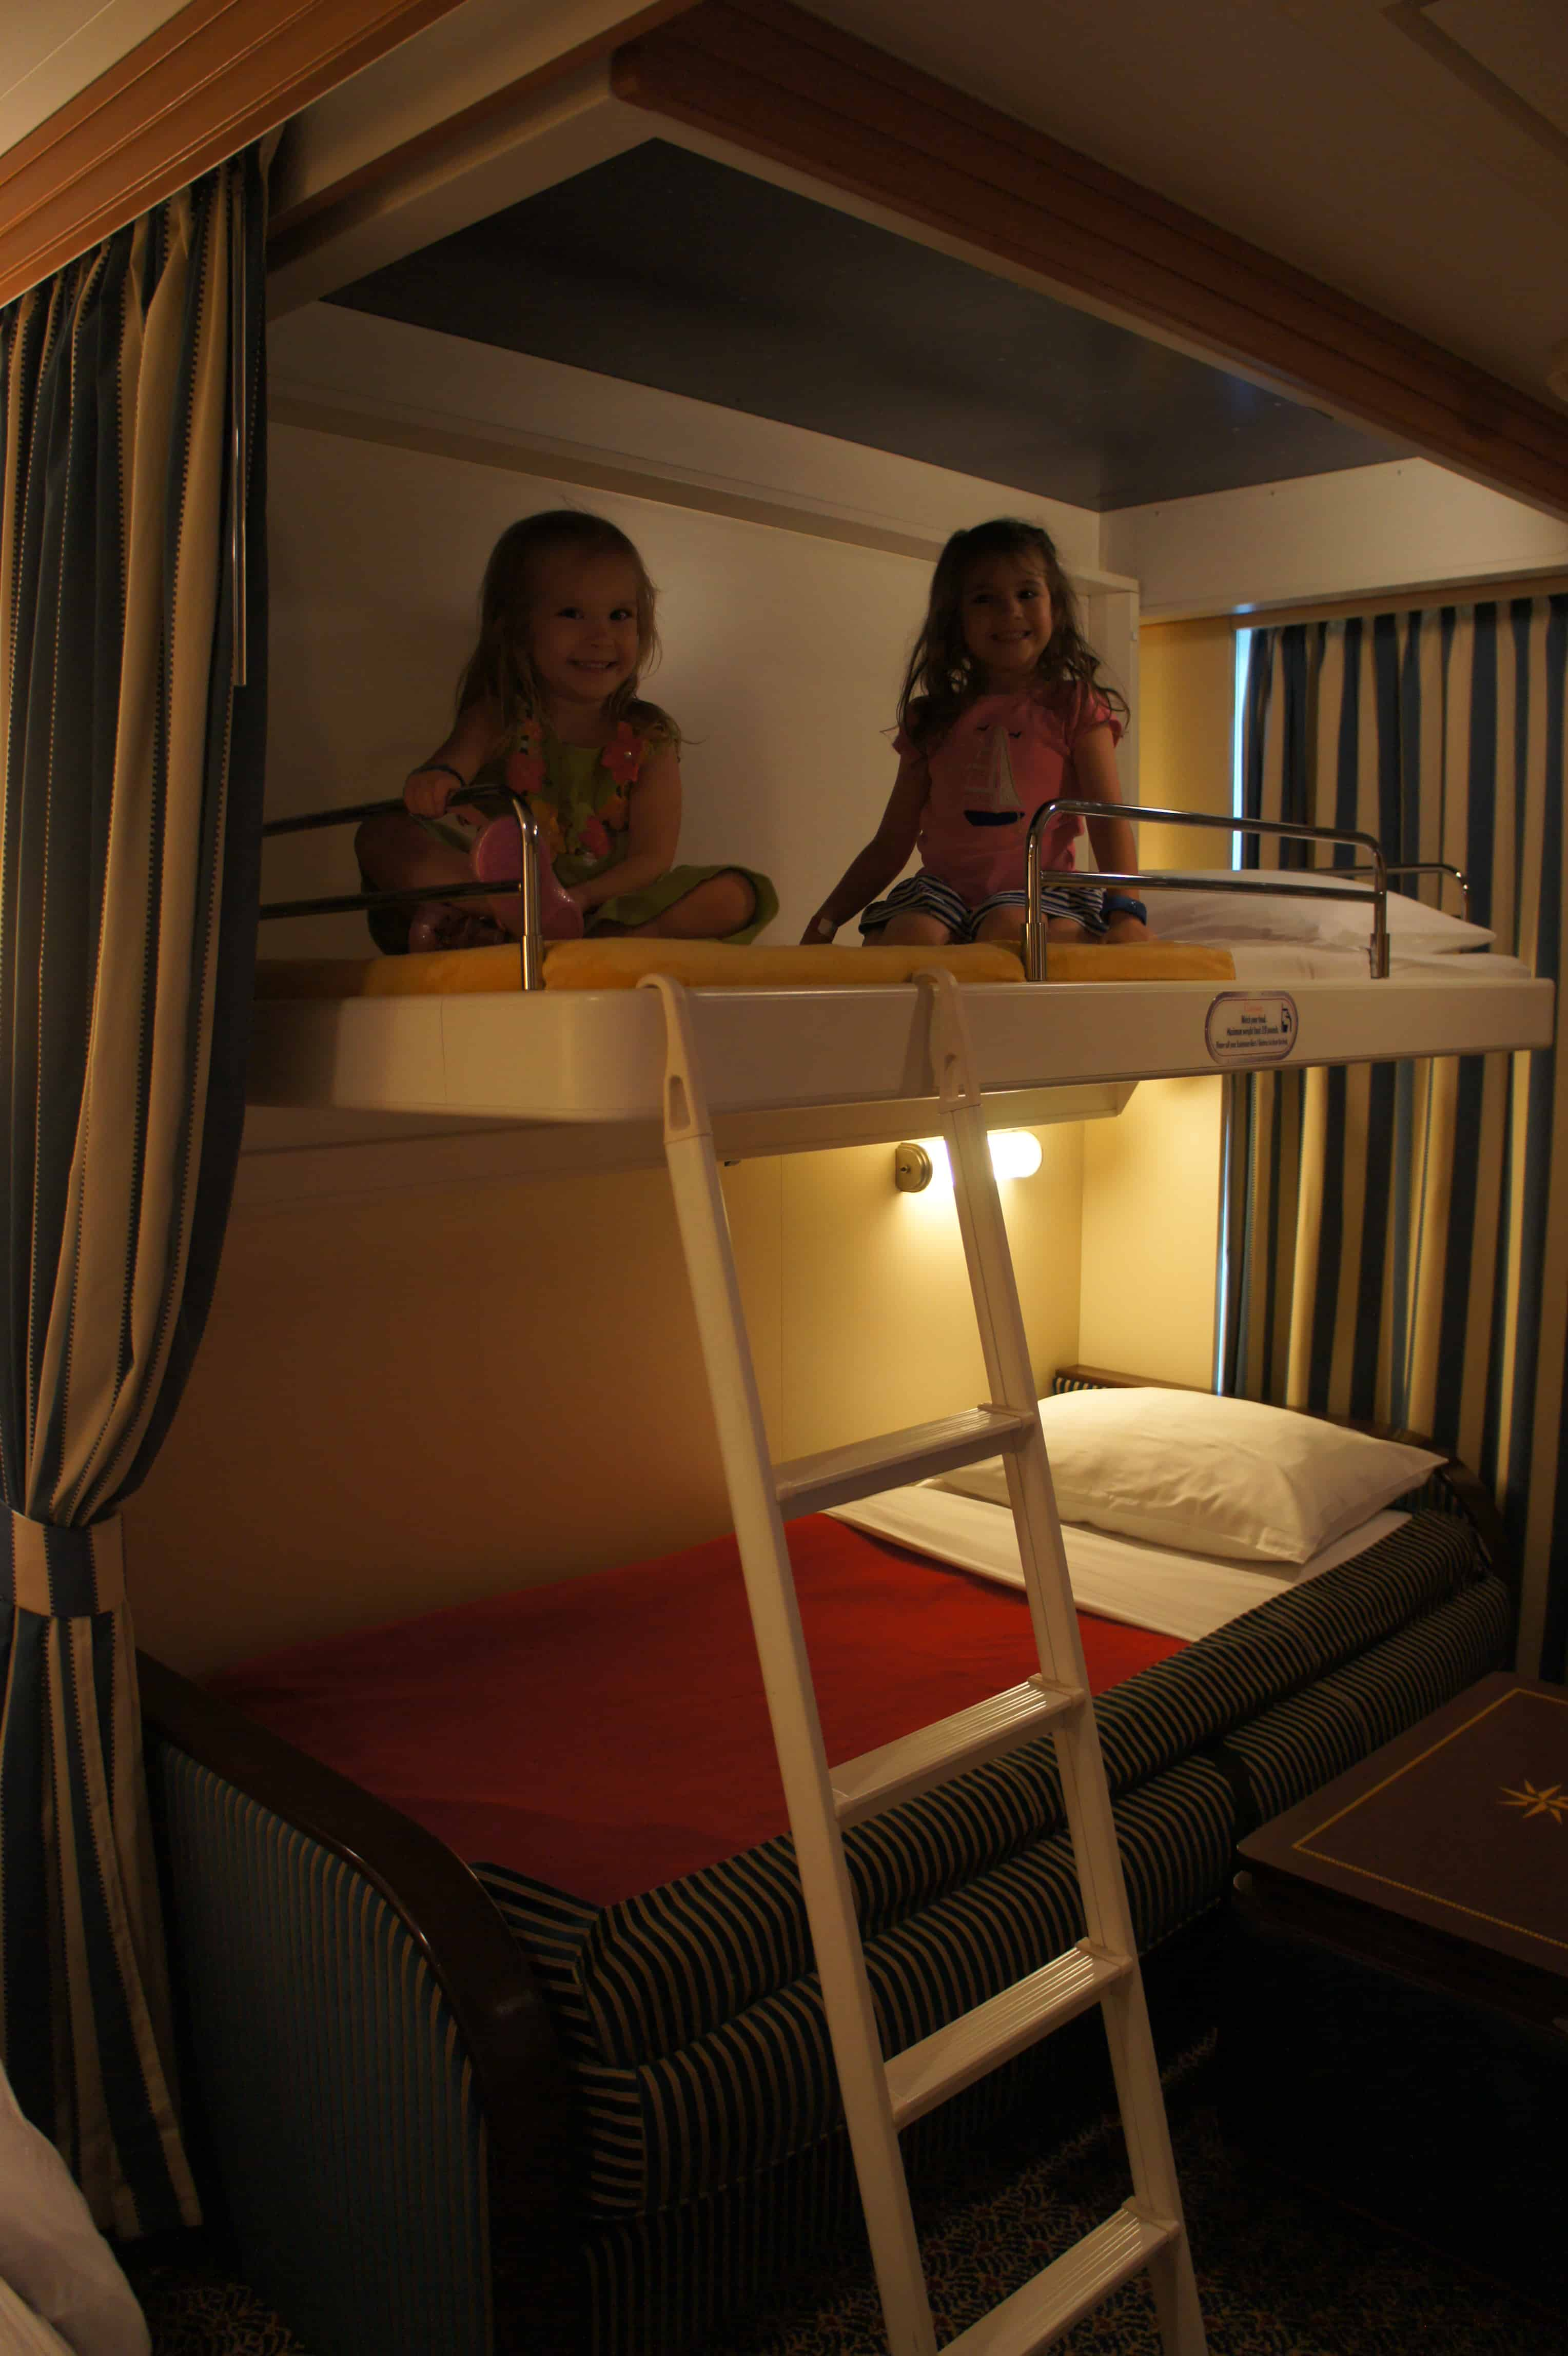 disney dream sofa bed cleaning service redditch deluxe family oceanview stateroom with oversized verandah